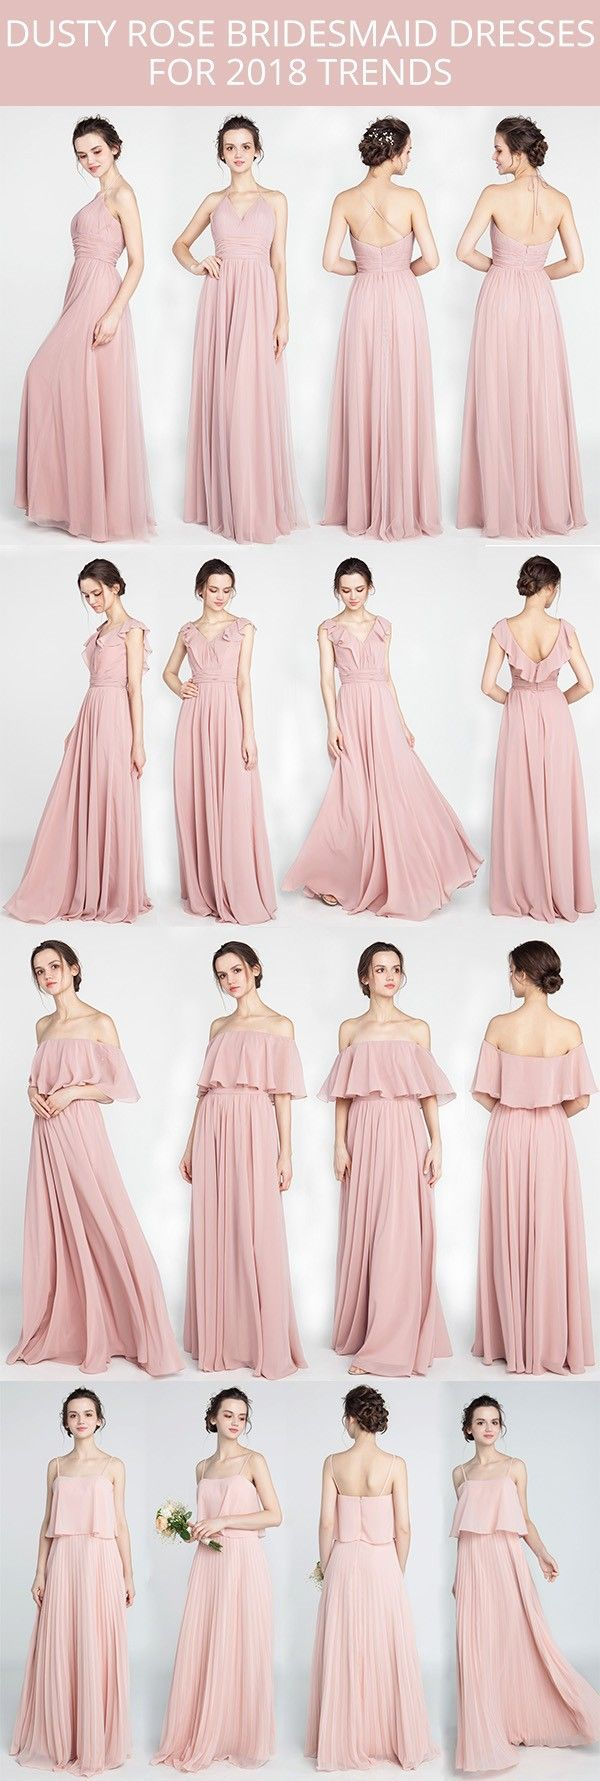 Best 25 rose bridesmaid dresses ideas on pinterest dusty rose dusty rose bridesmaid dresses for 2018 trends bridesmaiddresses ombrellifo Image collections